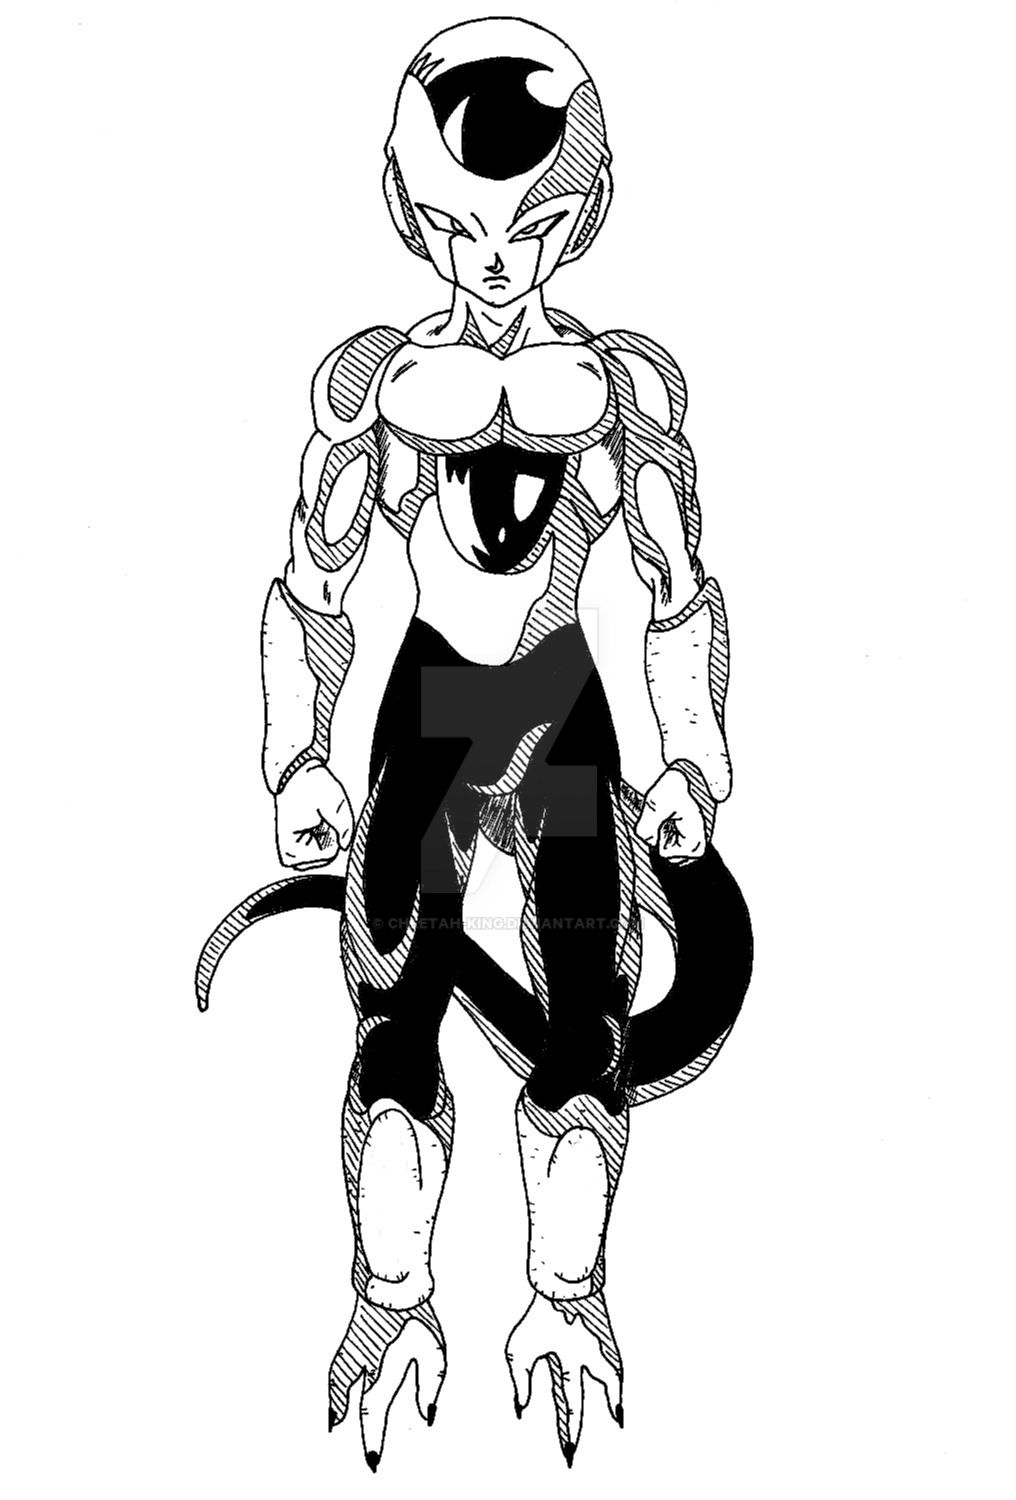 DBS - Frost Final Form by Cheetah-King on DeviantArt